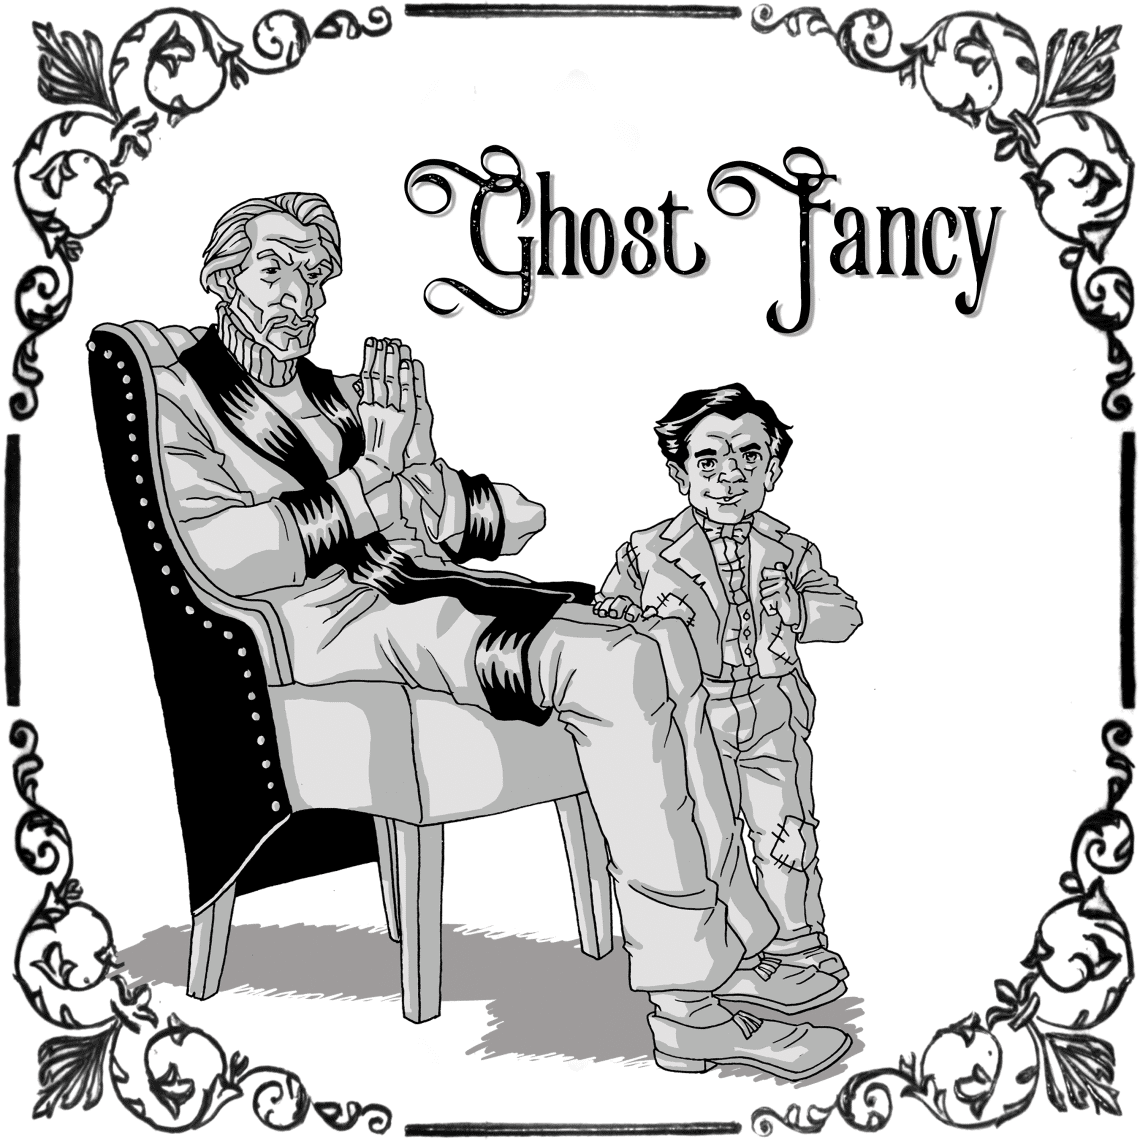 Ghost Fancy